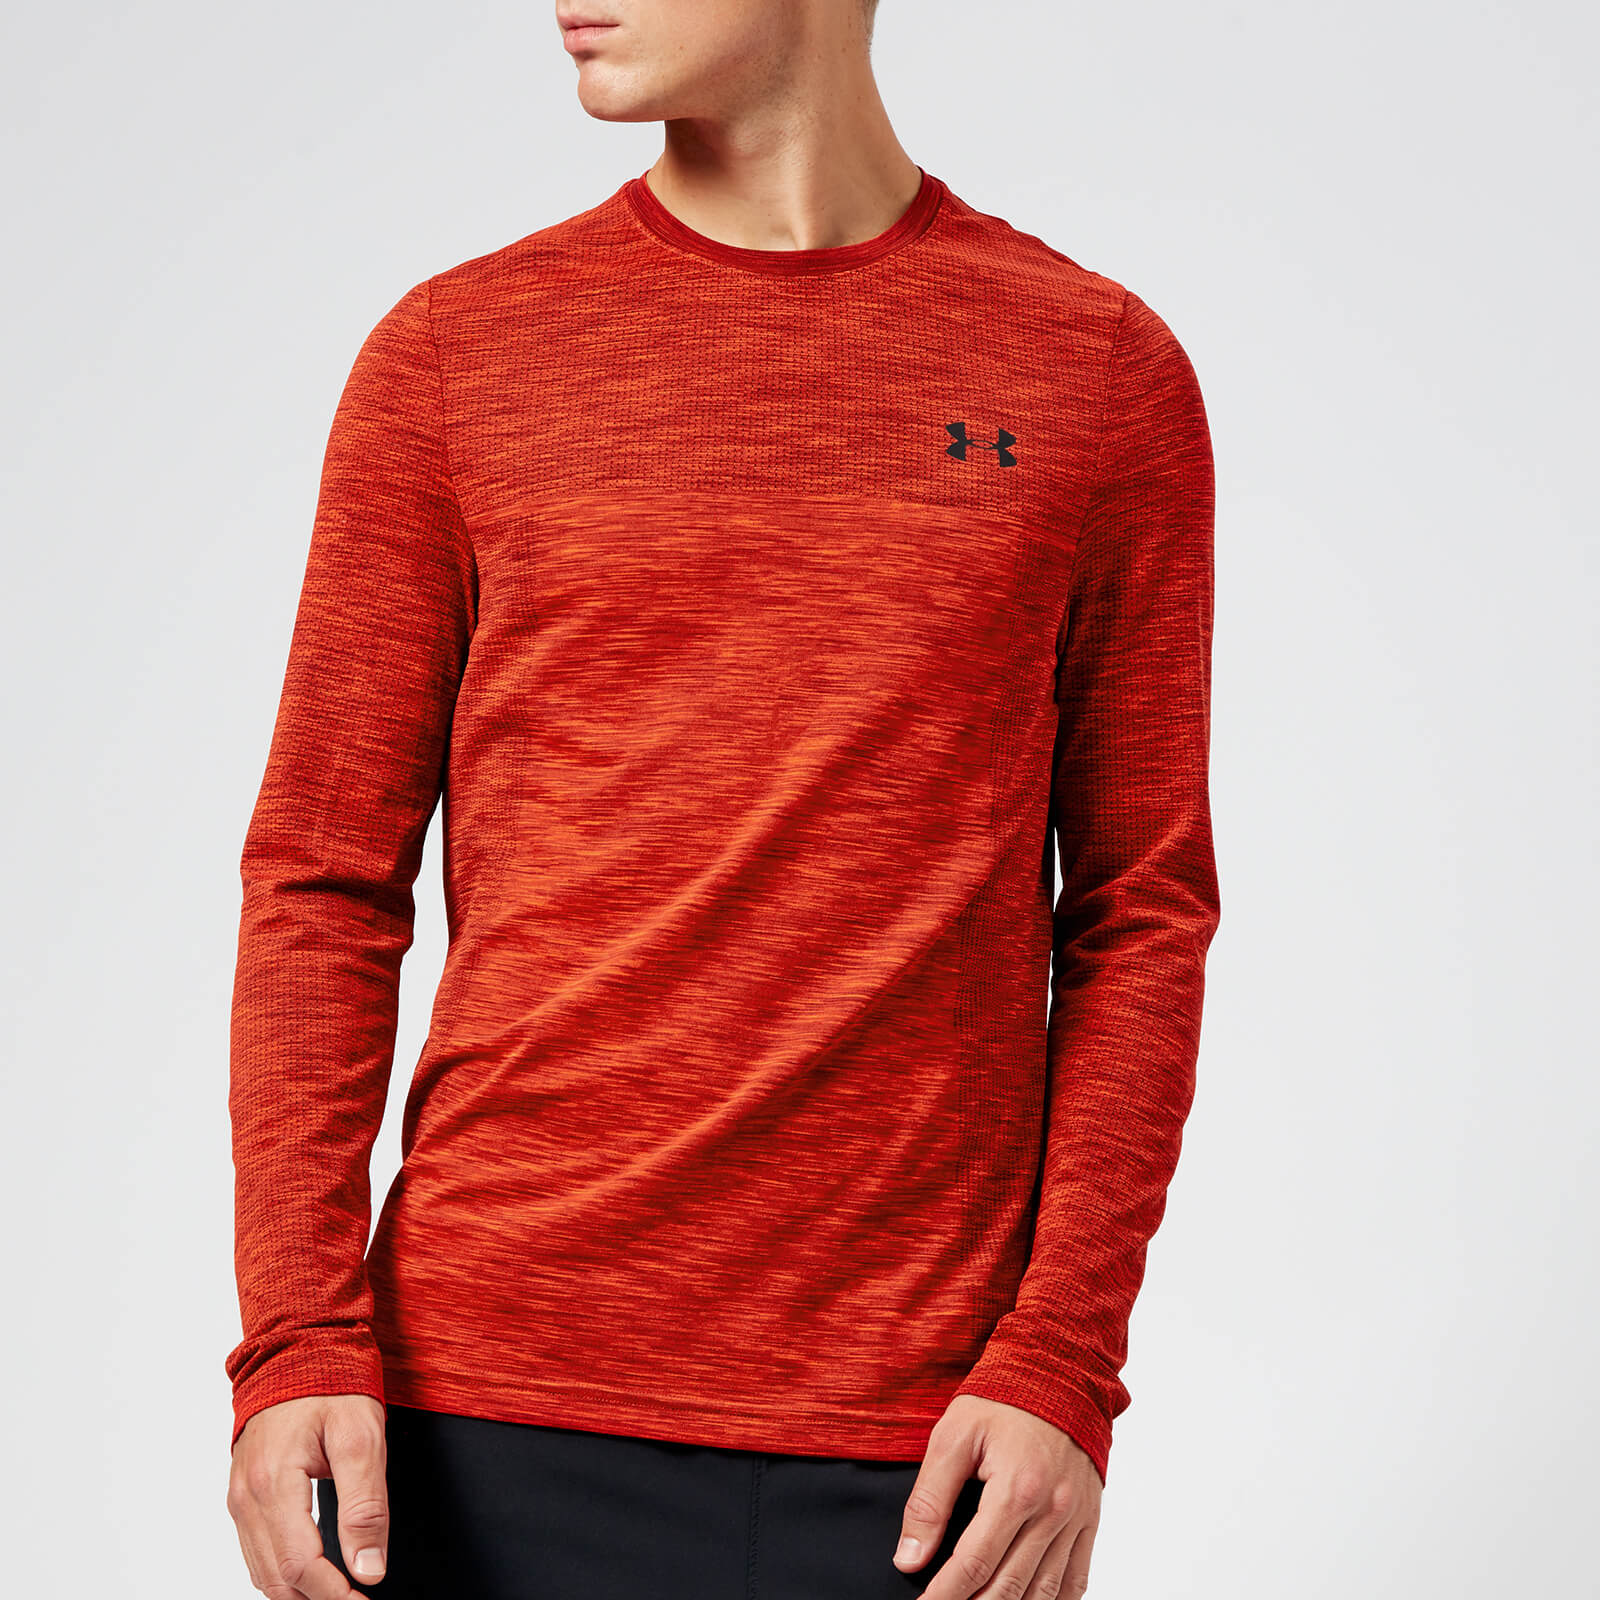 8f8564a97bb24 Under Armour Men s Vanish Seamless Long Sleeve Top - Radio Red Sports    Leisure